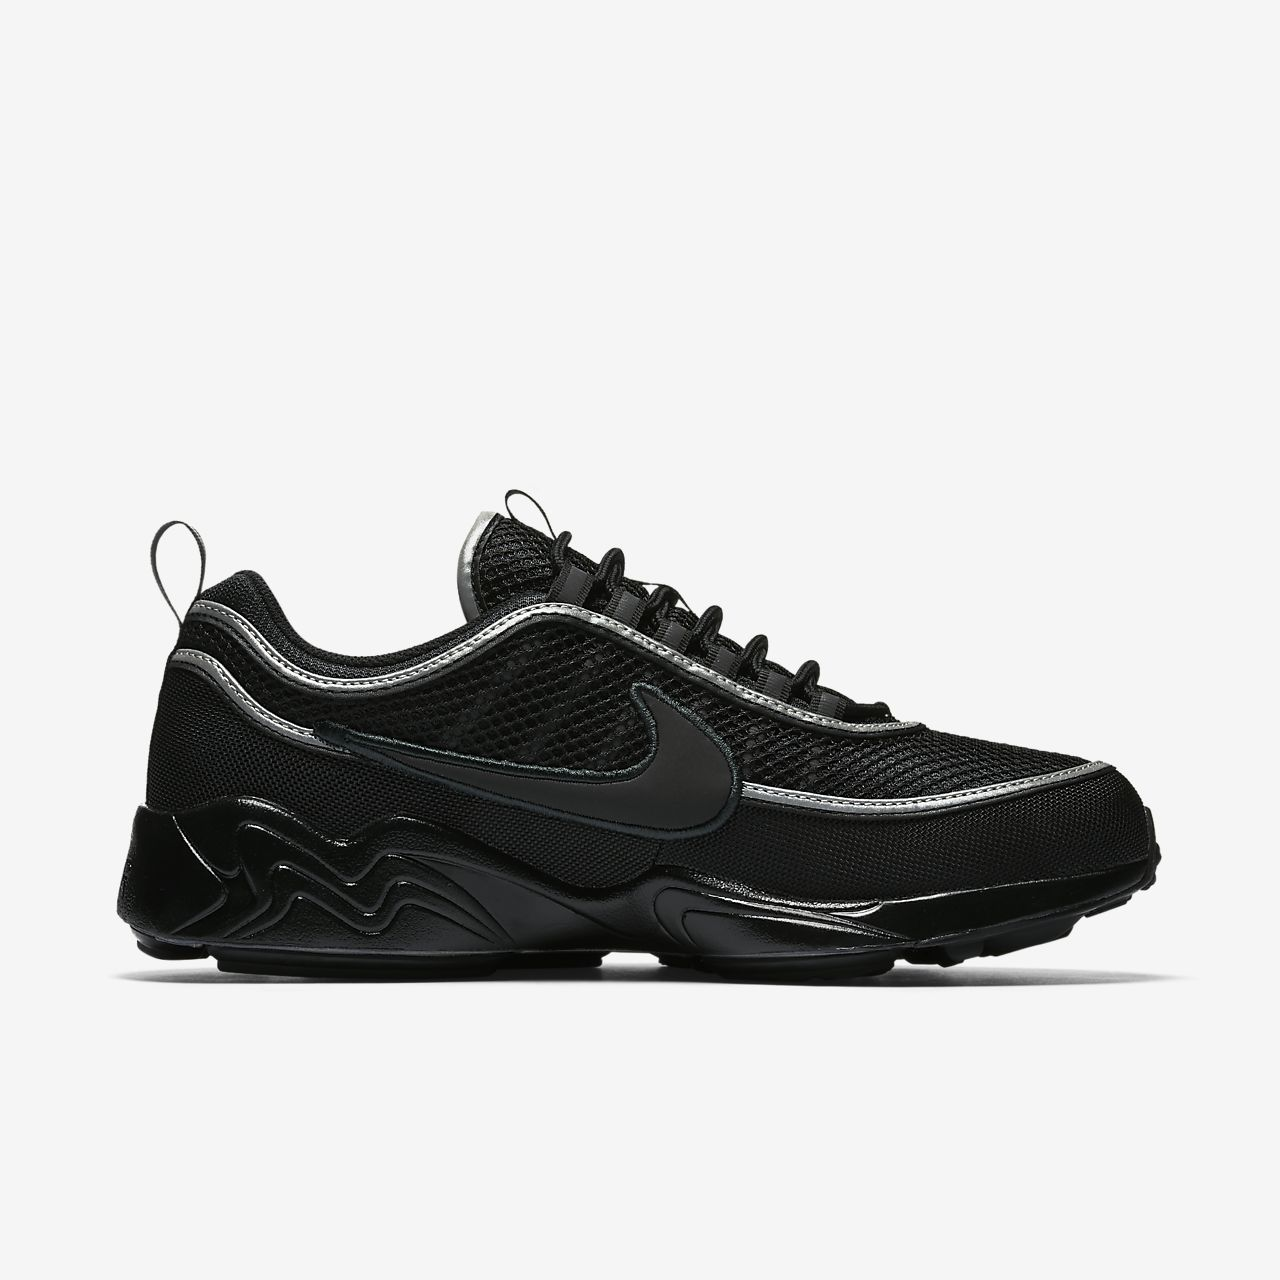 Découvrez Populaire Nike Air Zoom Spiridon Homme Chaussure Pas Cher Royer3602044